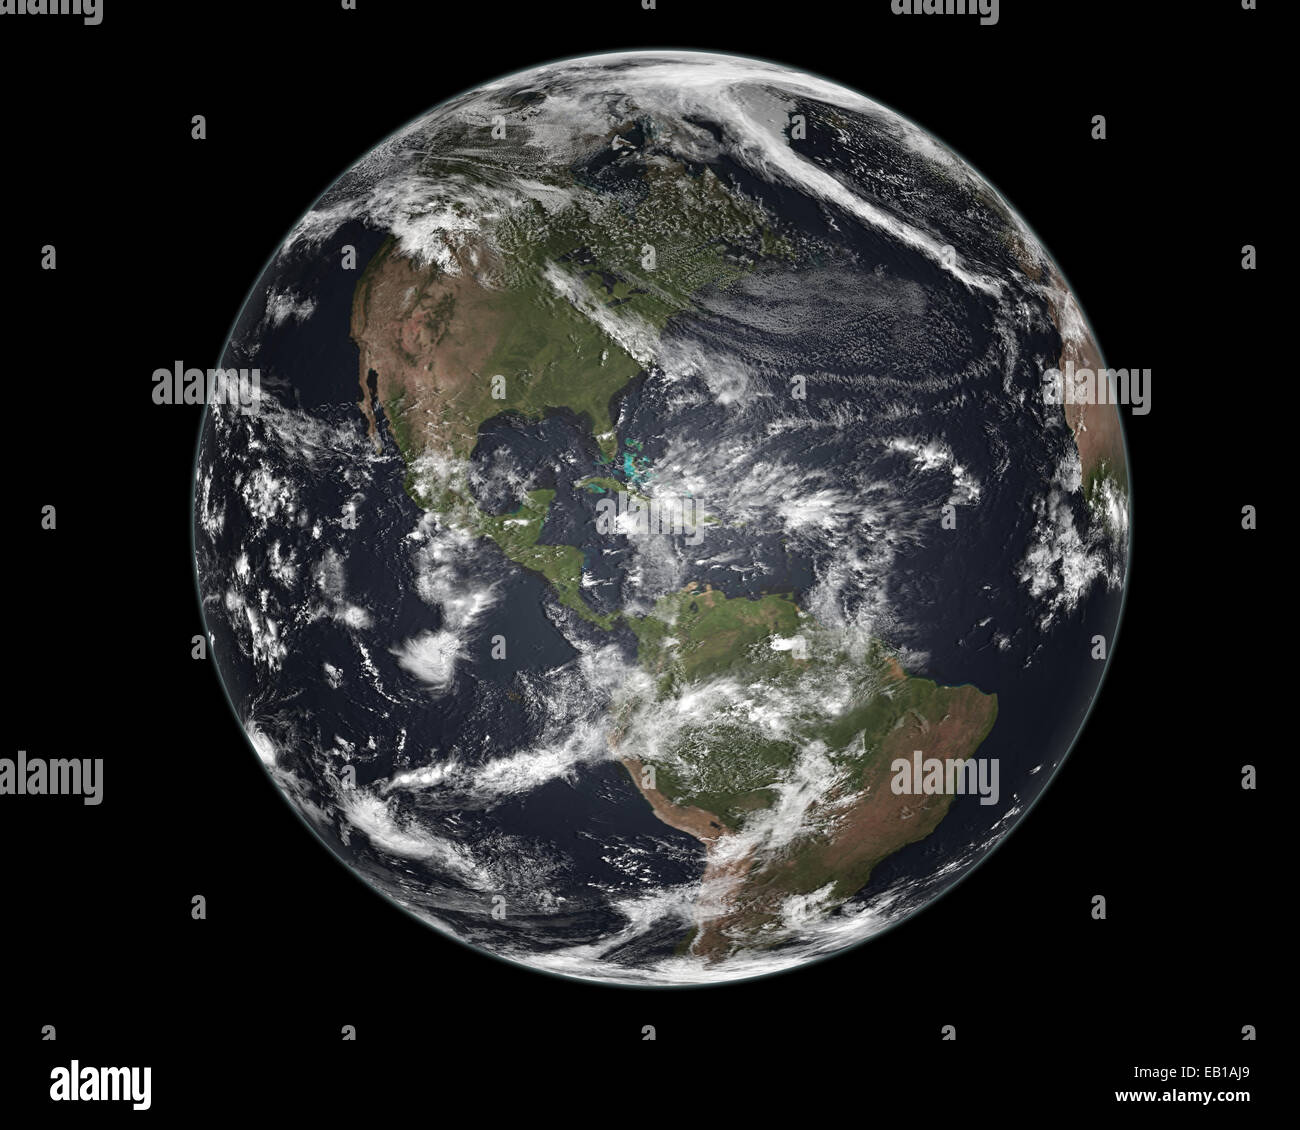 Earth viewed from space - Stock Image